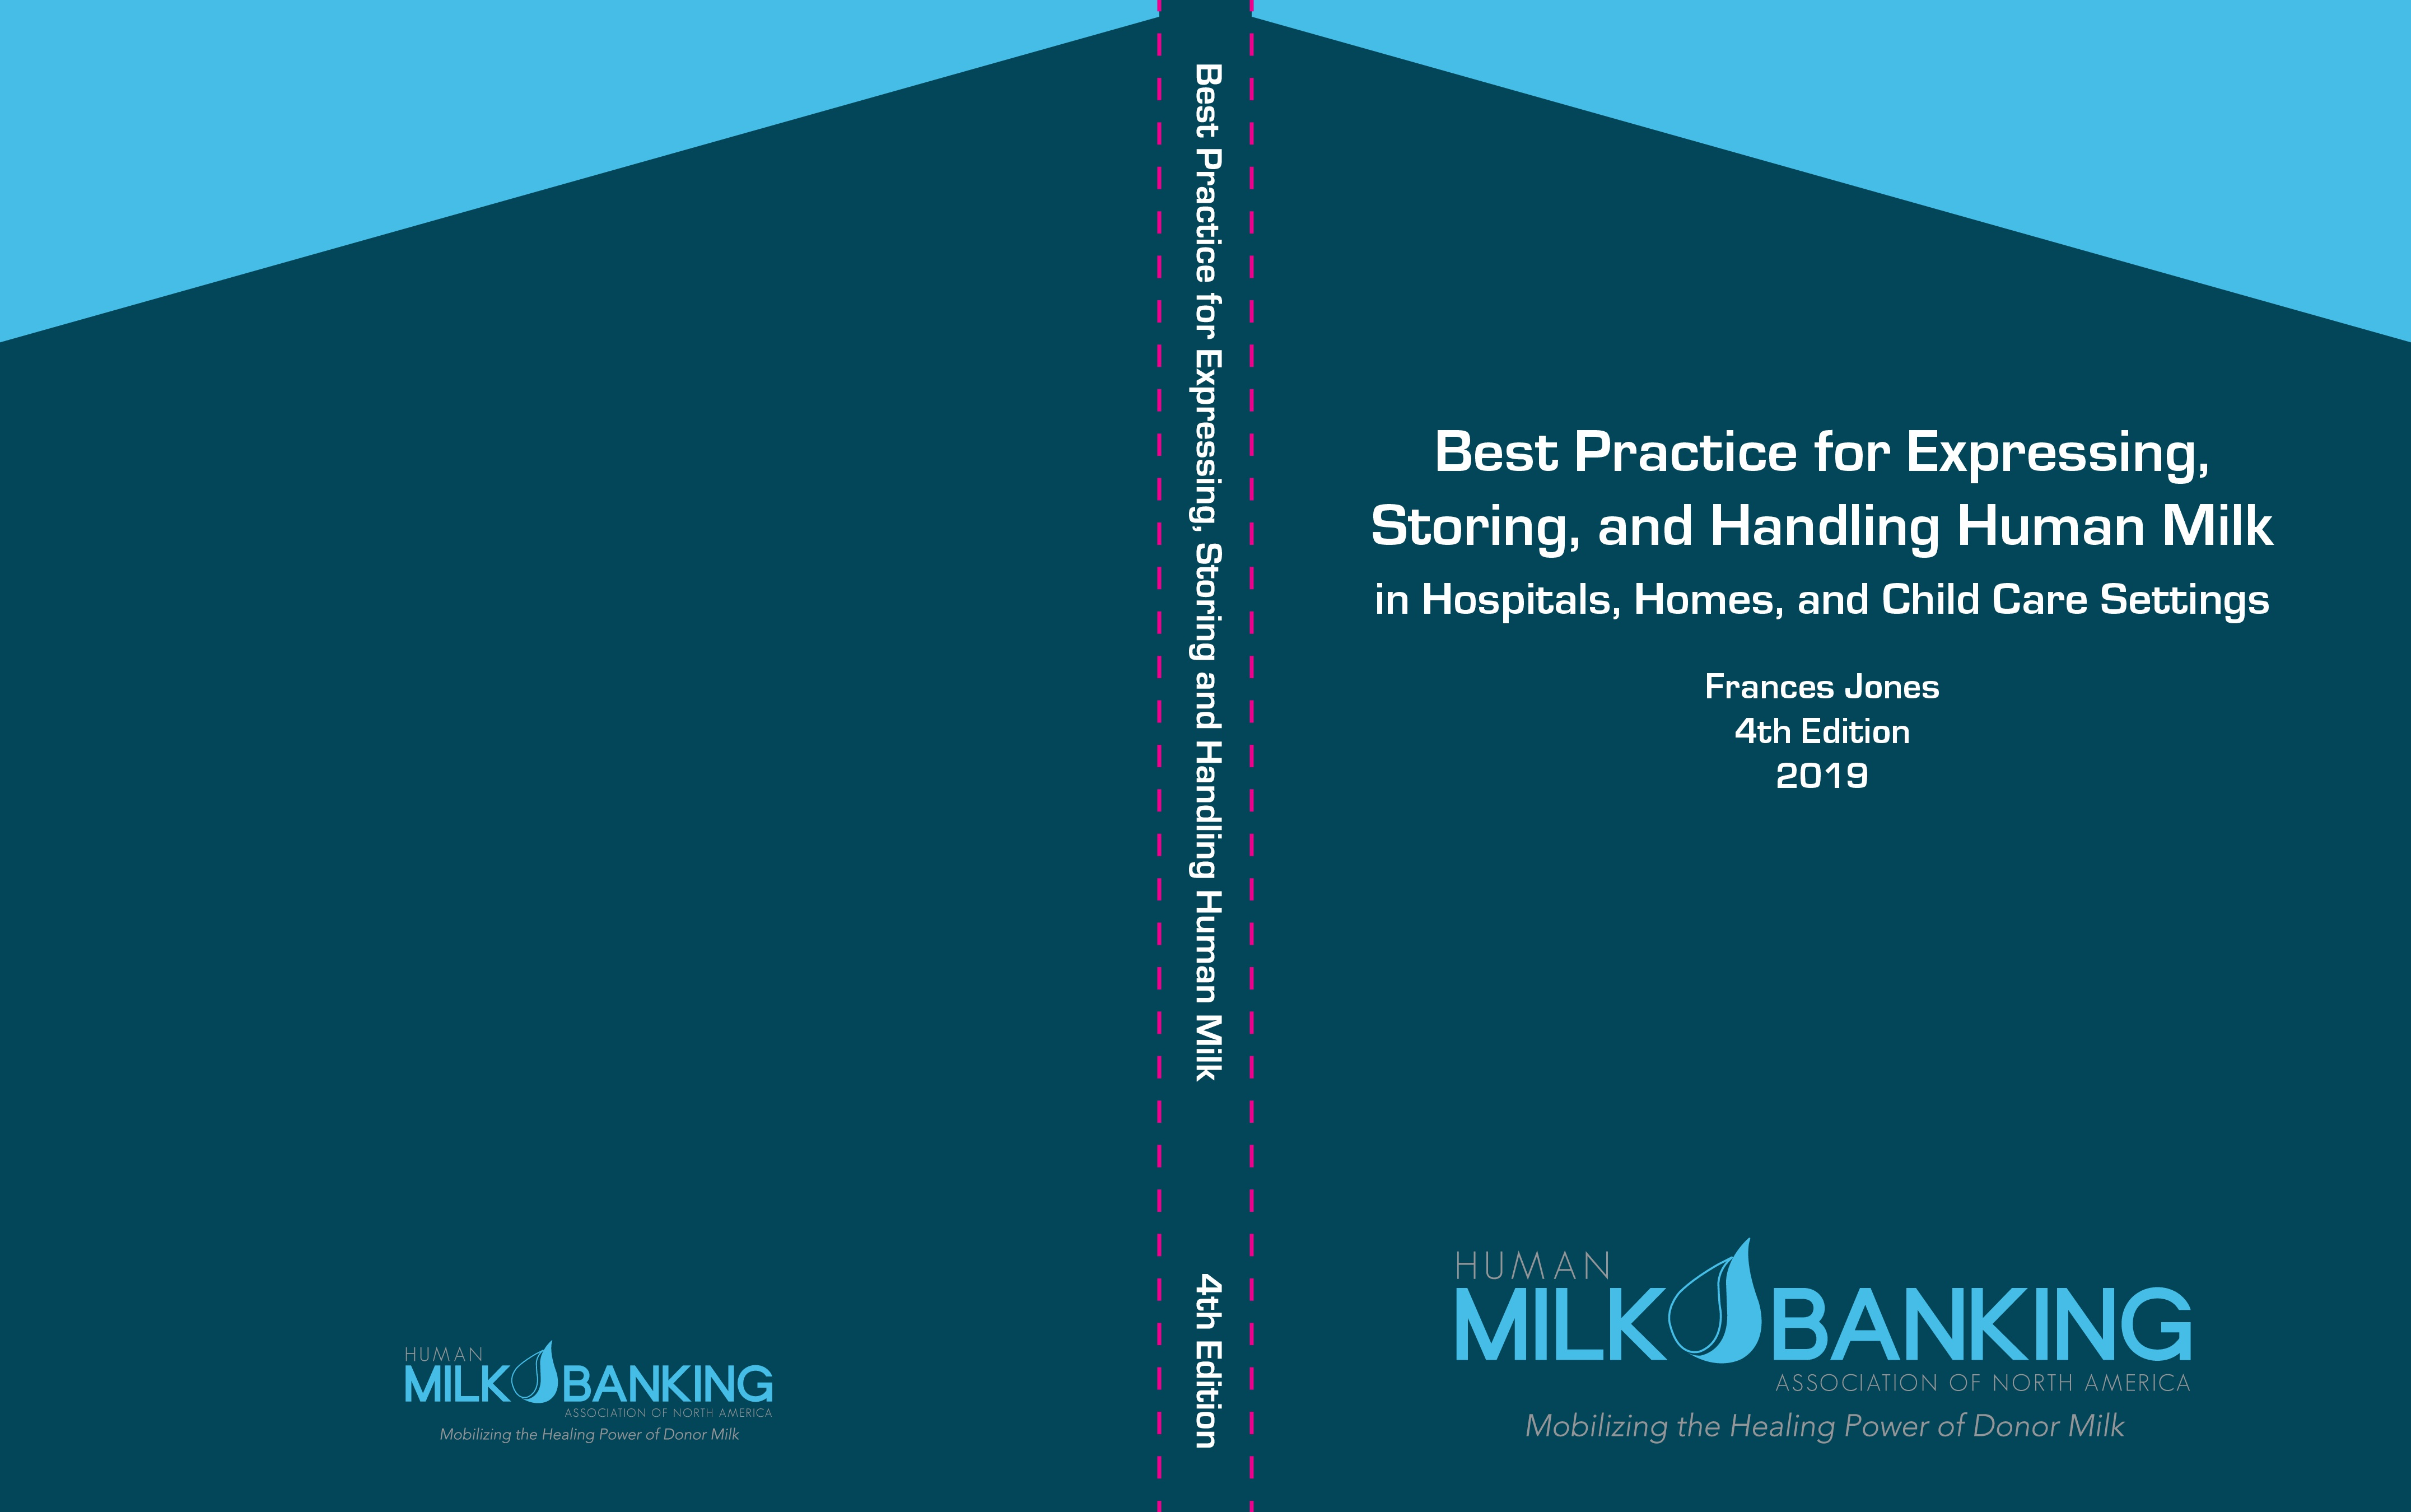 2019 Guide on Handling Human Milk Has New Thawing Recommendations, Over 1000 Cited References, and More